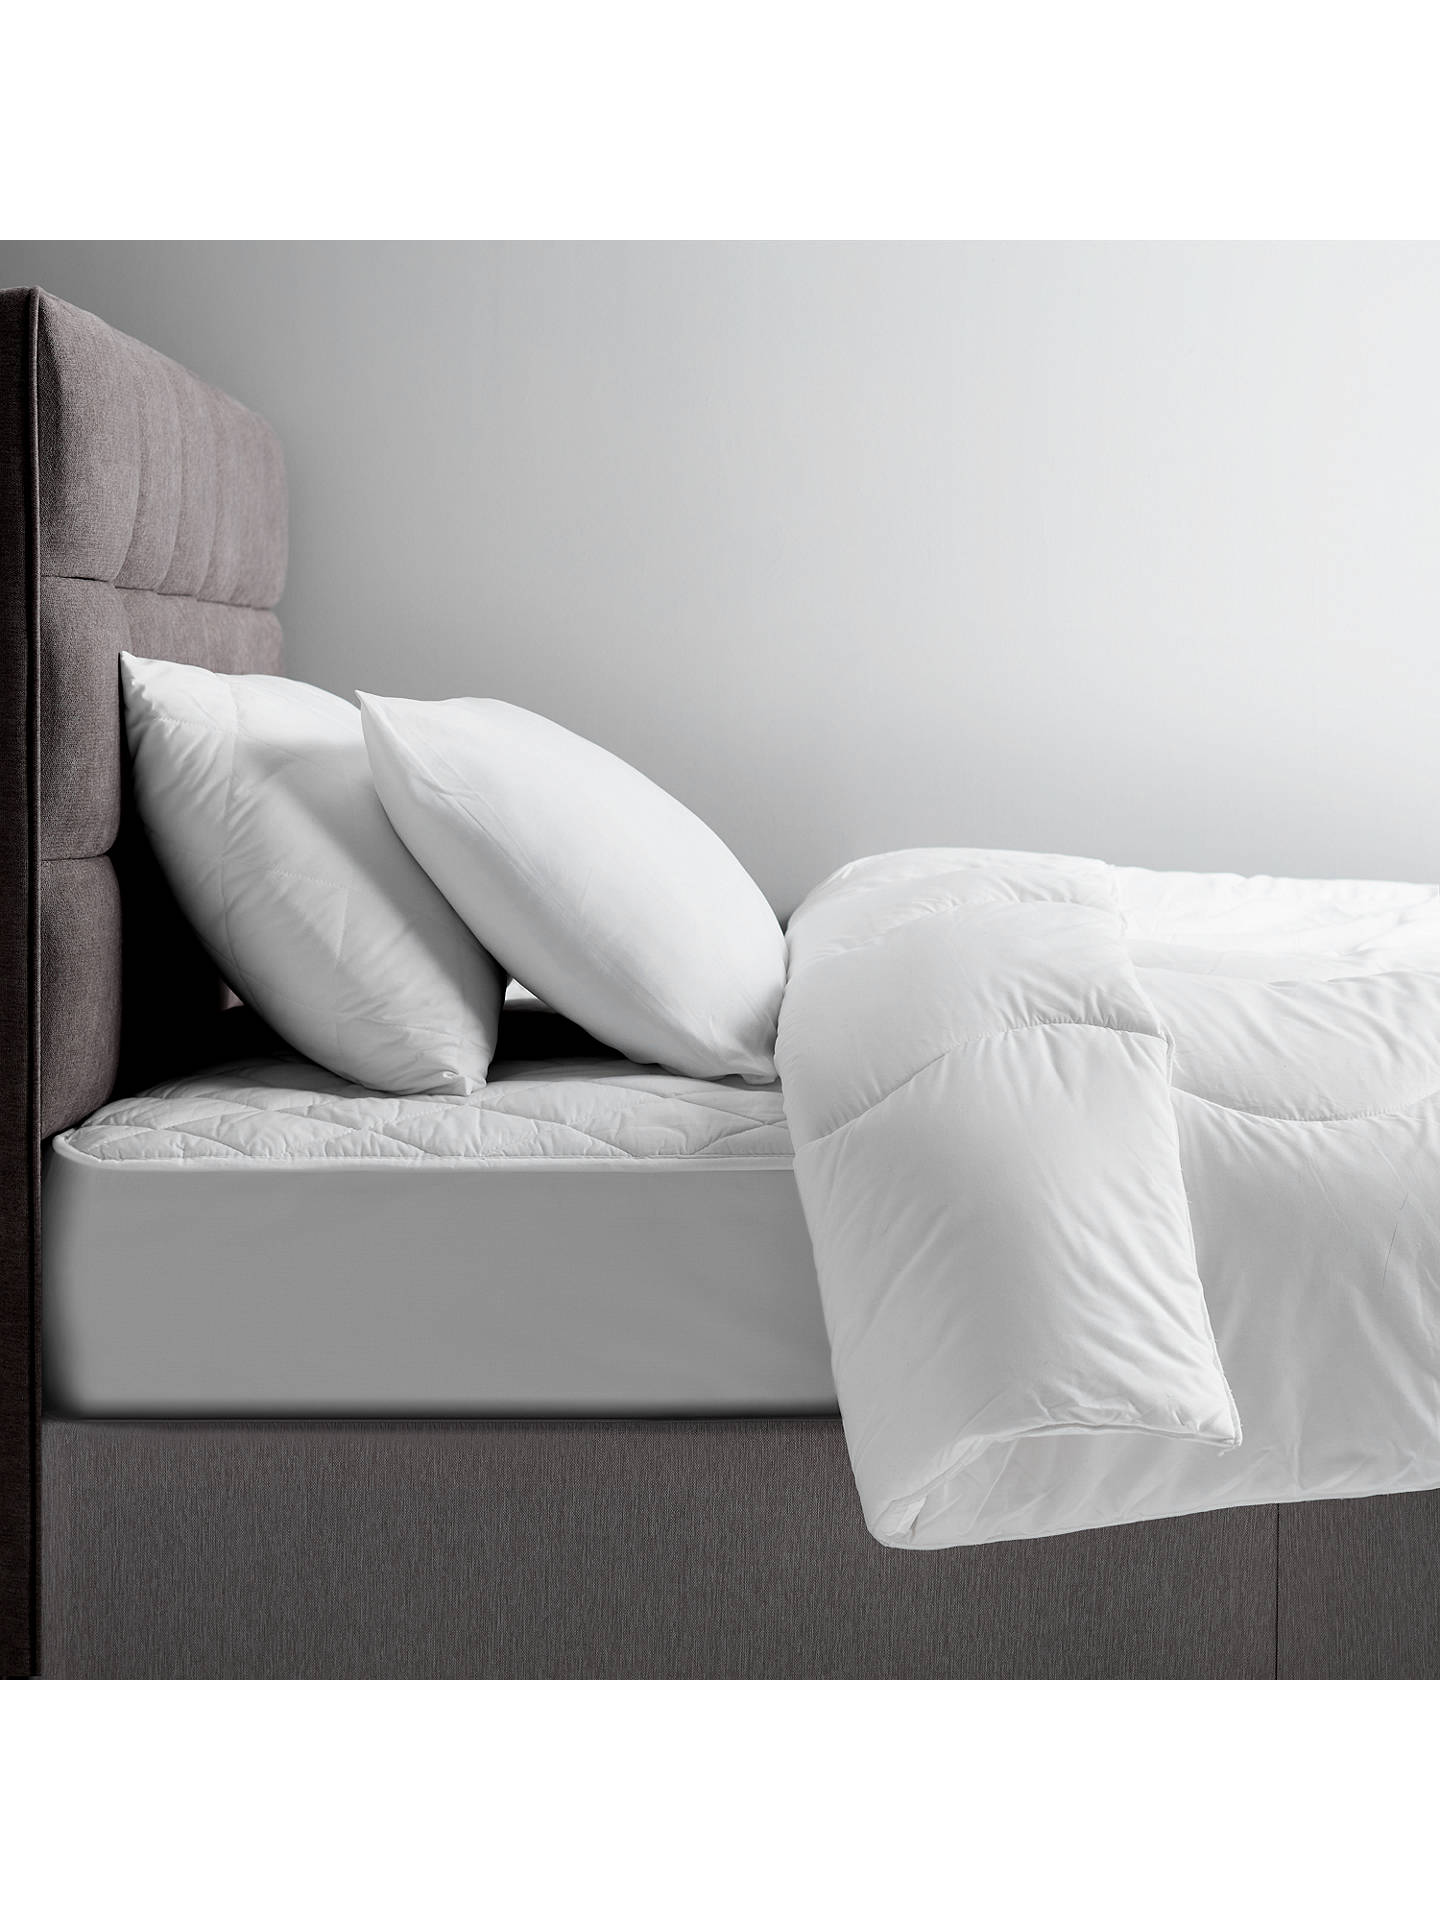 BuyJohn Lewis & Partners The Basics Microfibre Duvets, 13.5 Tog, Single Online at johnlewis.com